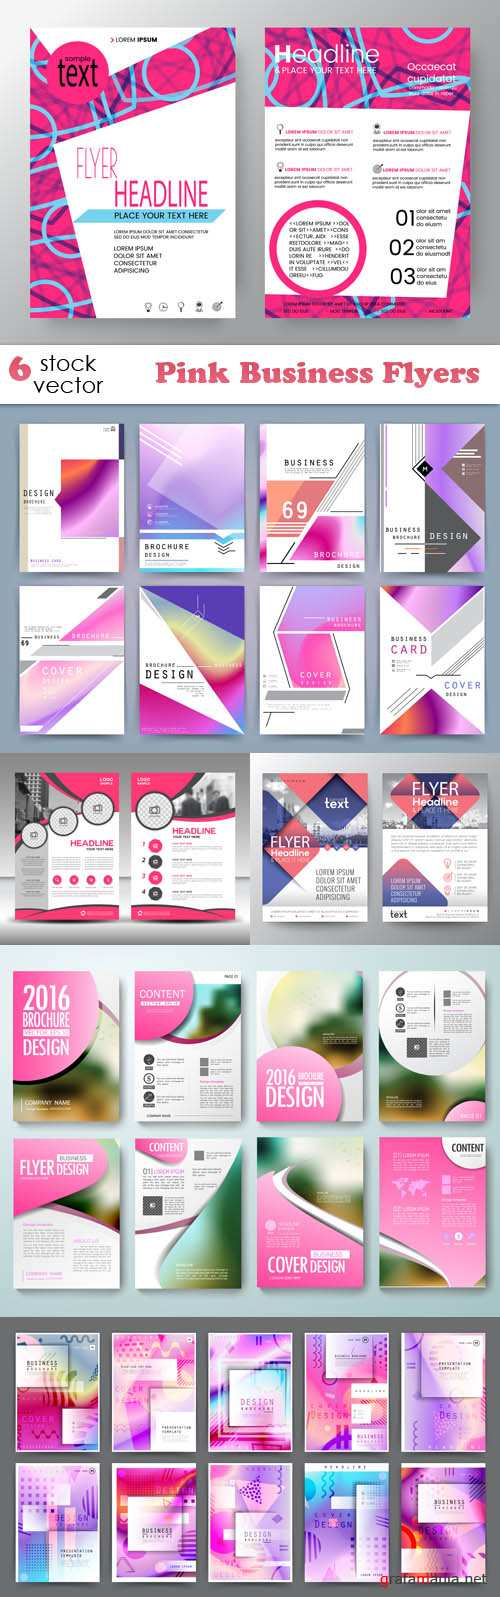 Vectors - Pink Business Flyers